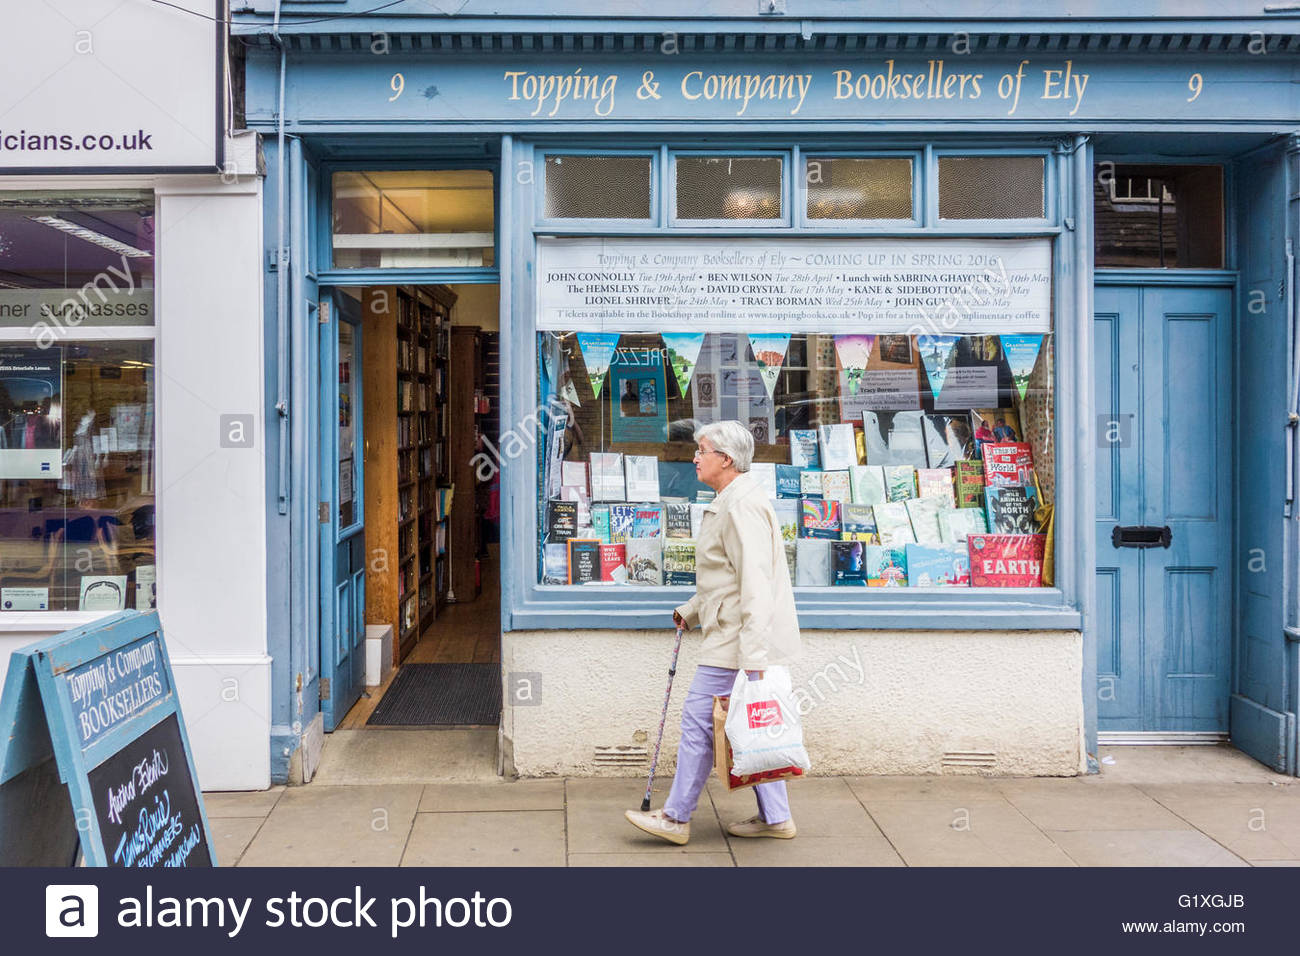 Topping and Company traditional booksellers in the High Street, Ely, Cambridgeshire, England, UK - Stock Image